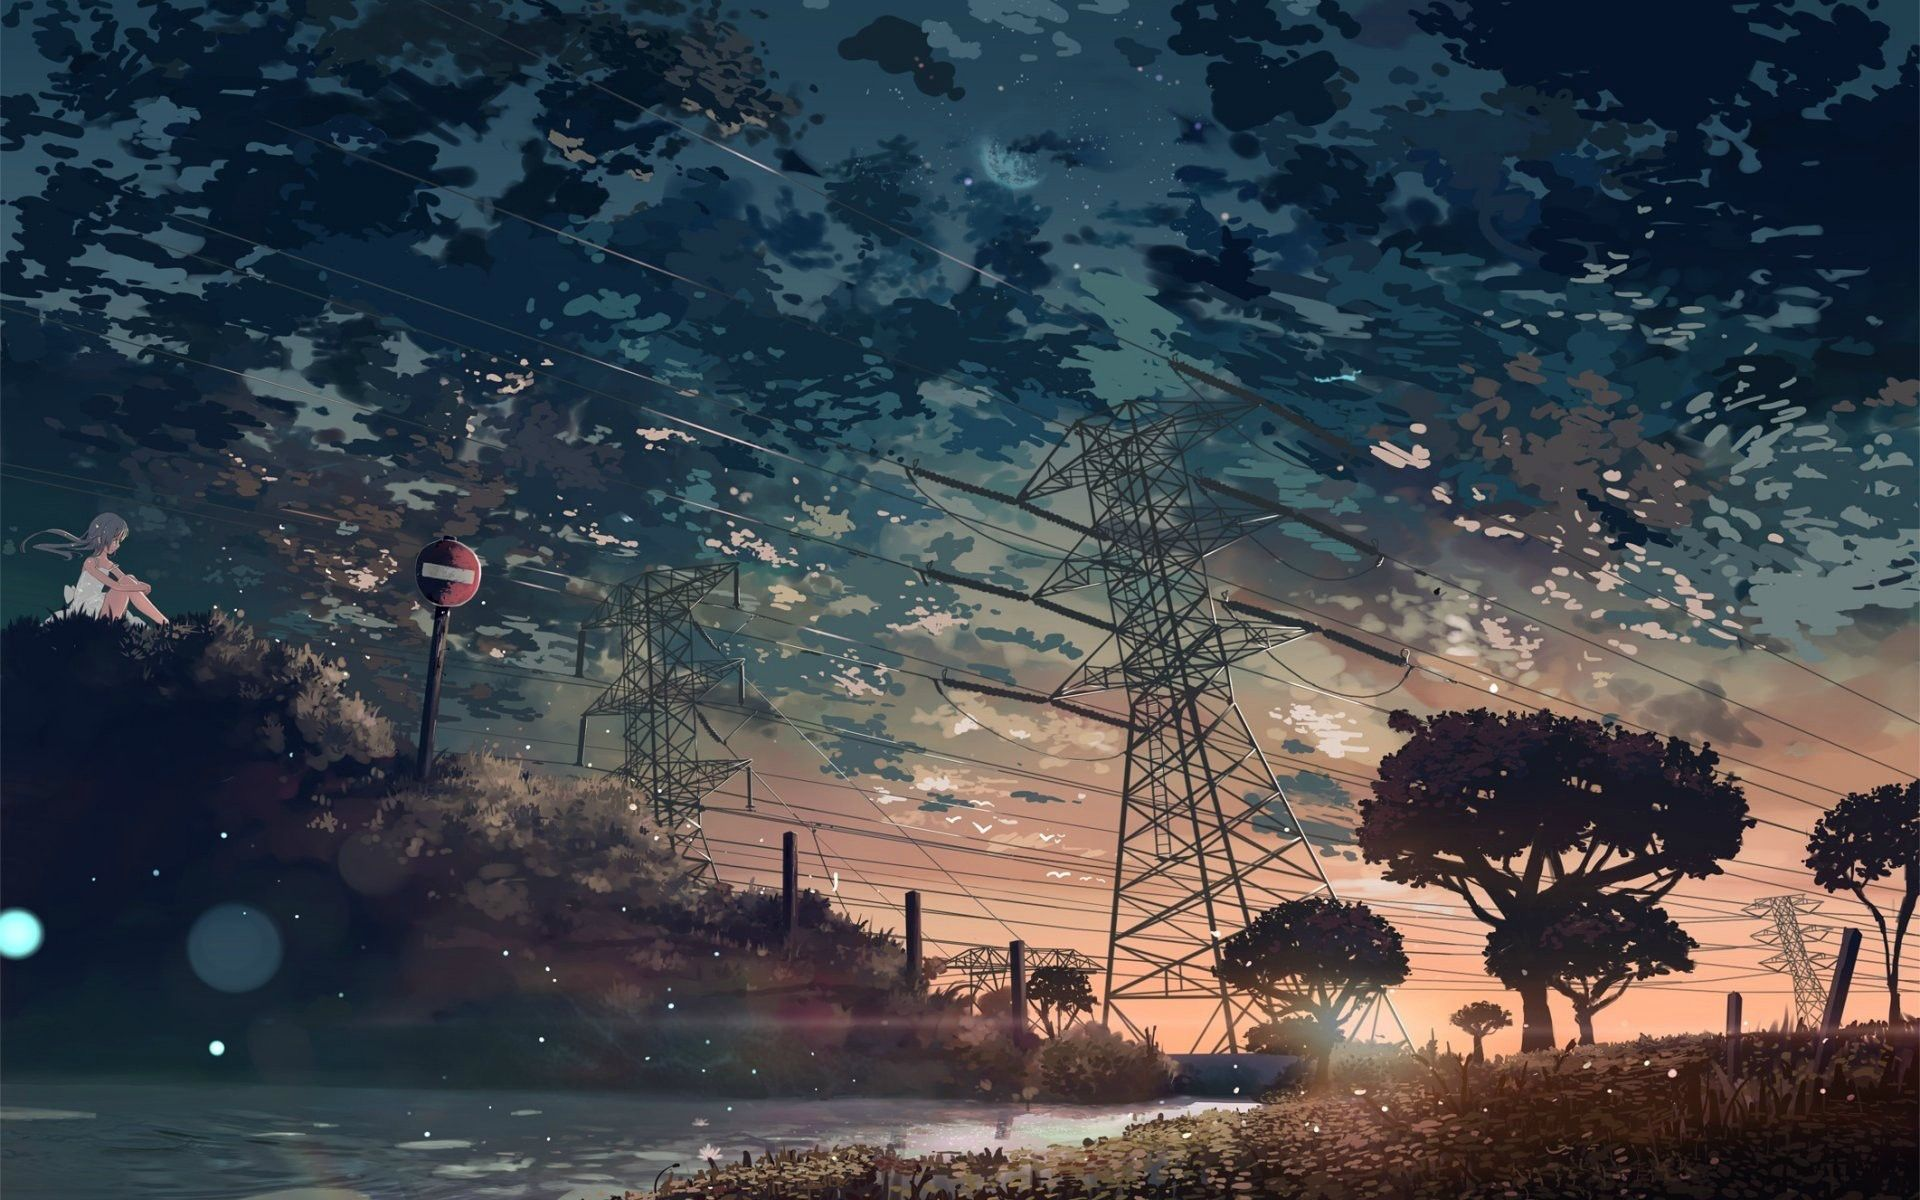 1920x1200 Awesome Aesthetic Anime Desktop Wallpaper Gallery Anime Wallpaper Hd Anime Scenery Scenery Wallpaper Anime Scenery Wallpaper